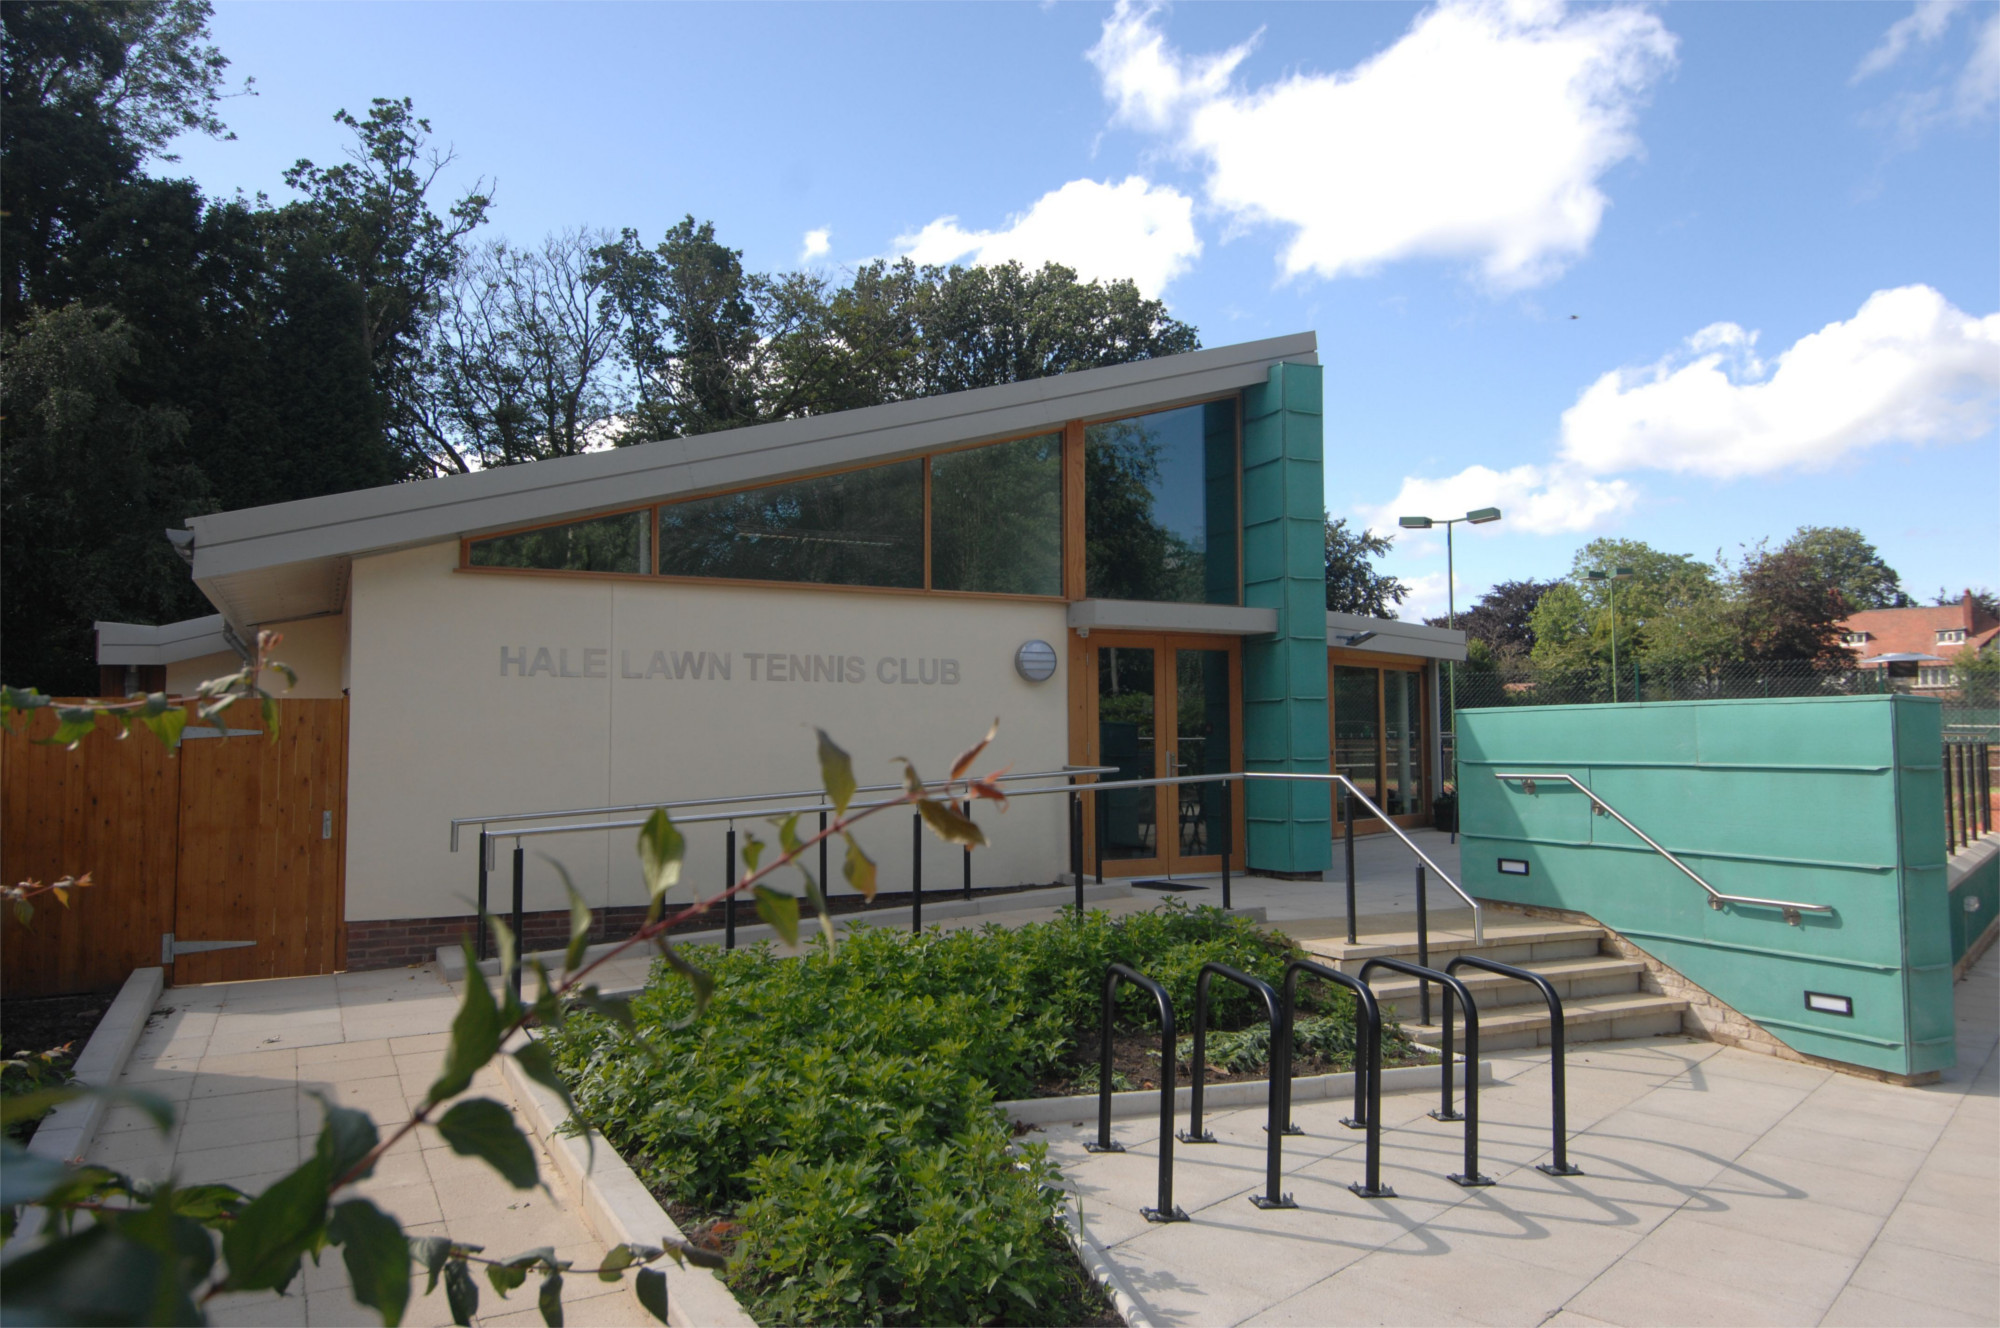 FPL-Sports-and-Leisure-Architecture-Hale-Lawn-Tennis-Club-11